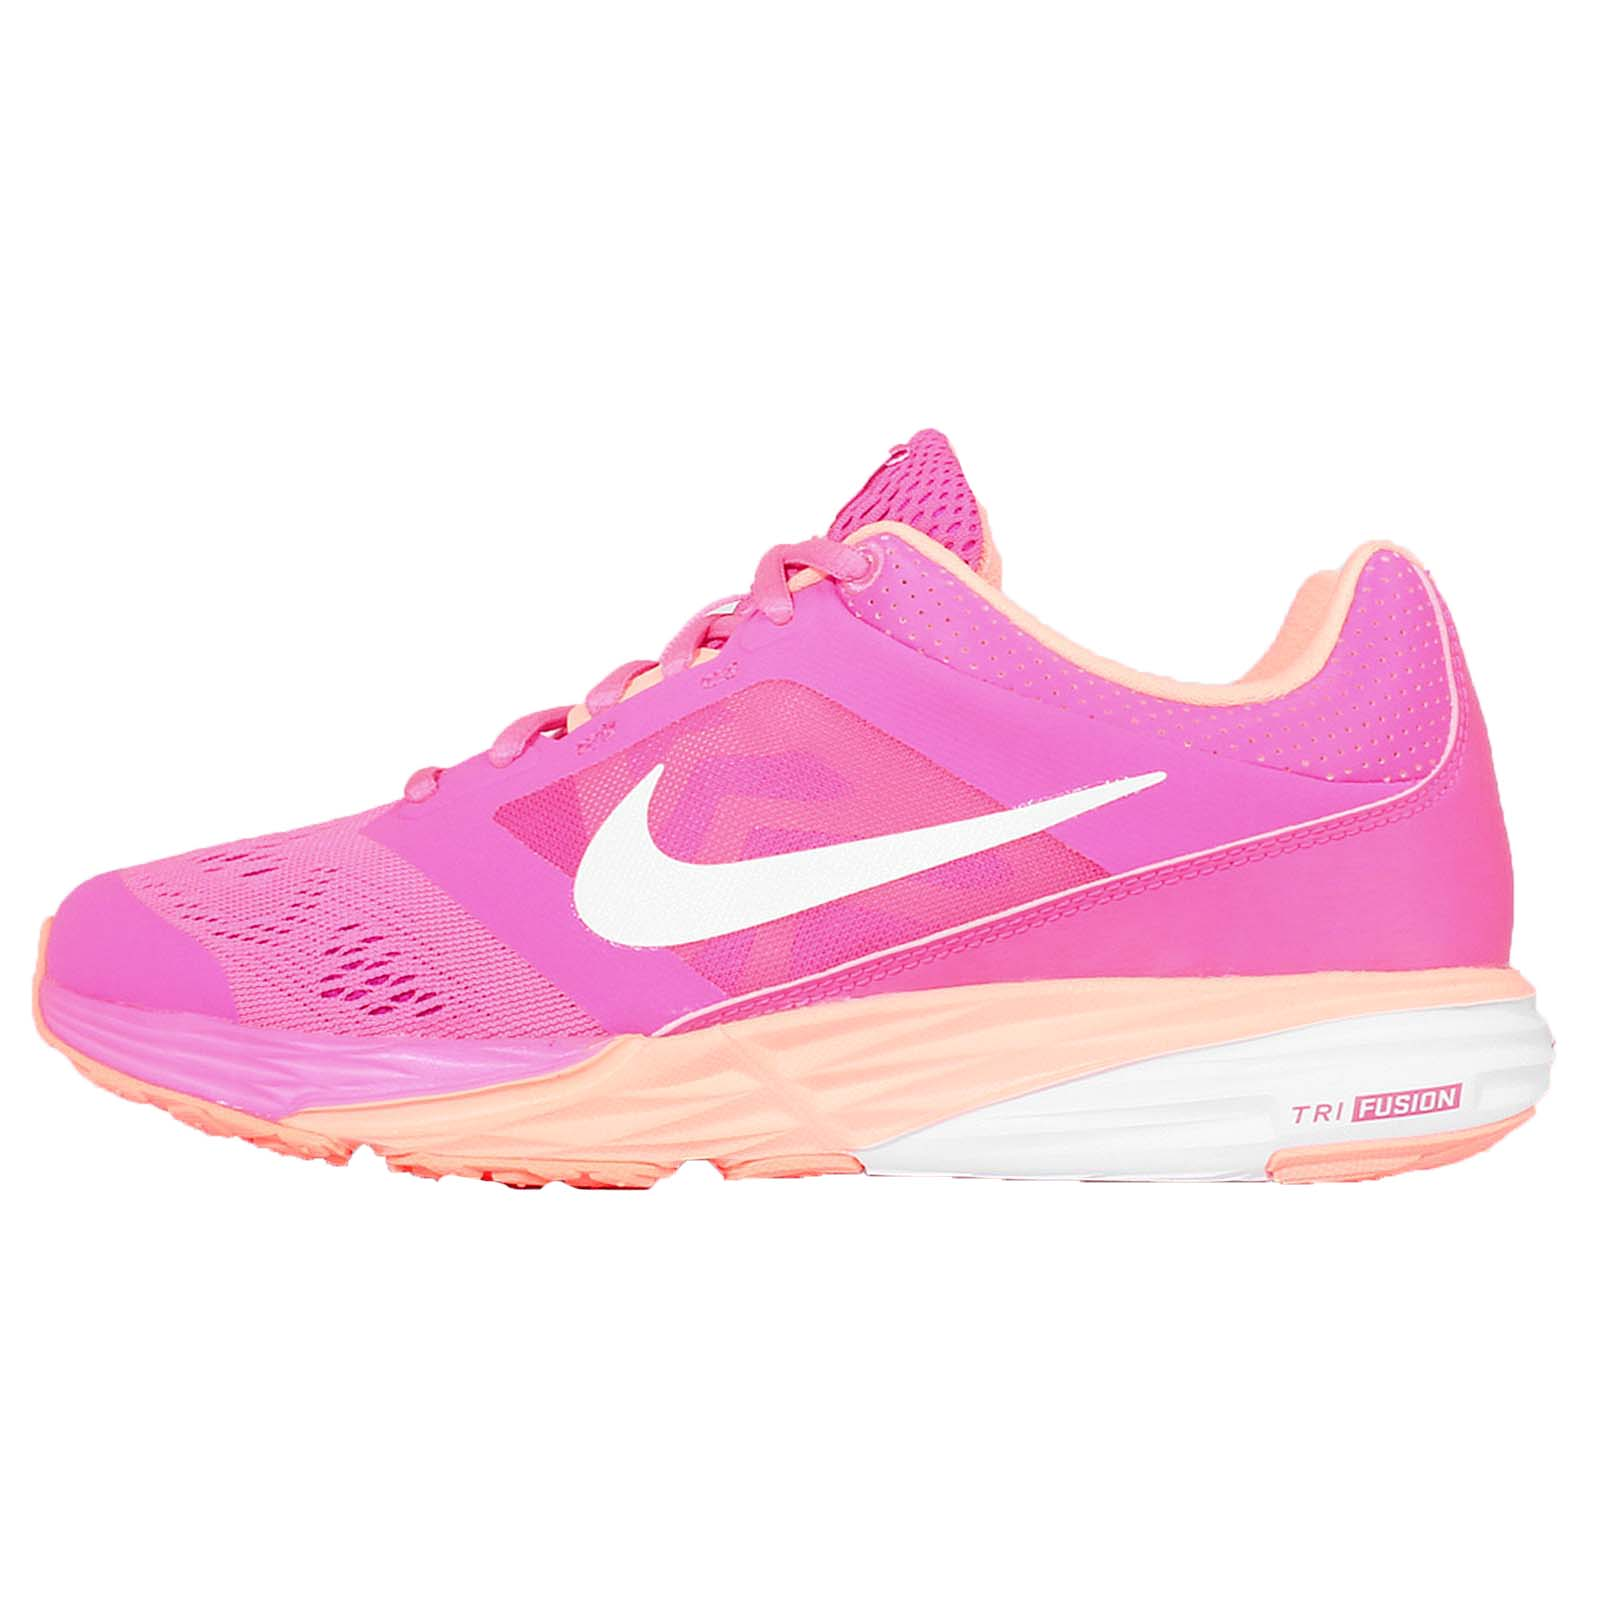 wmns nike tri fusion run msl pink orange white womens